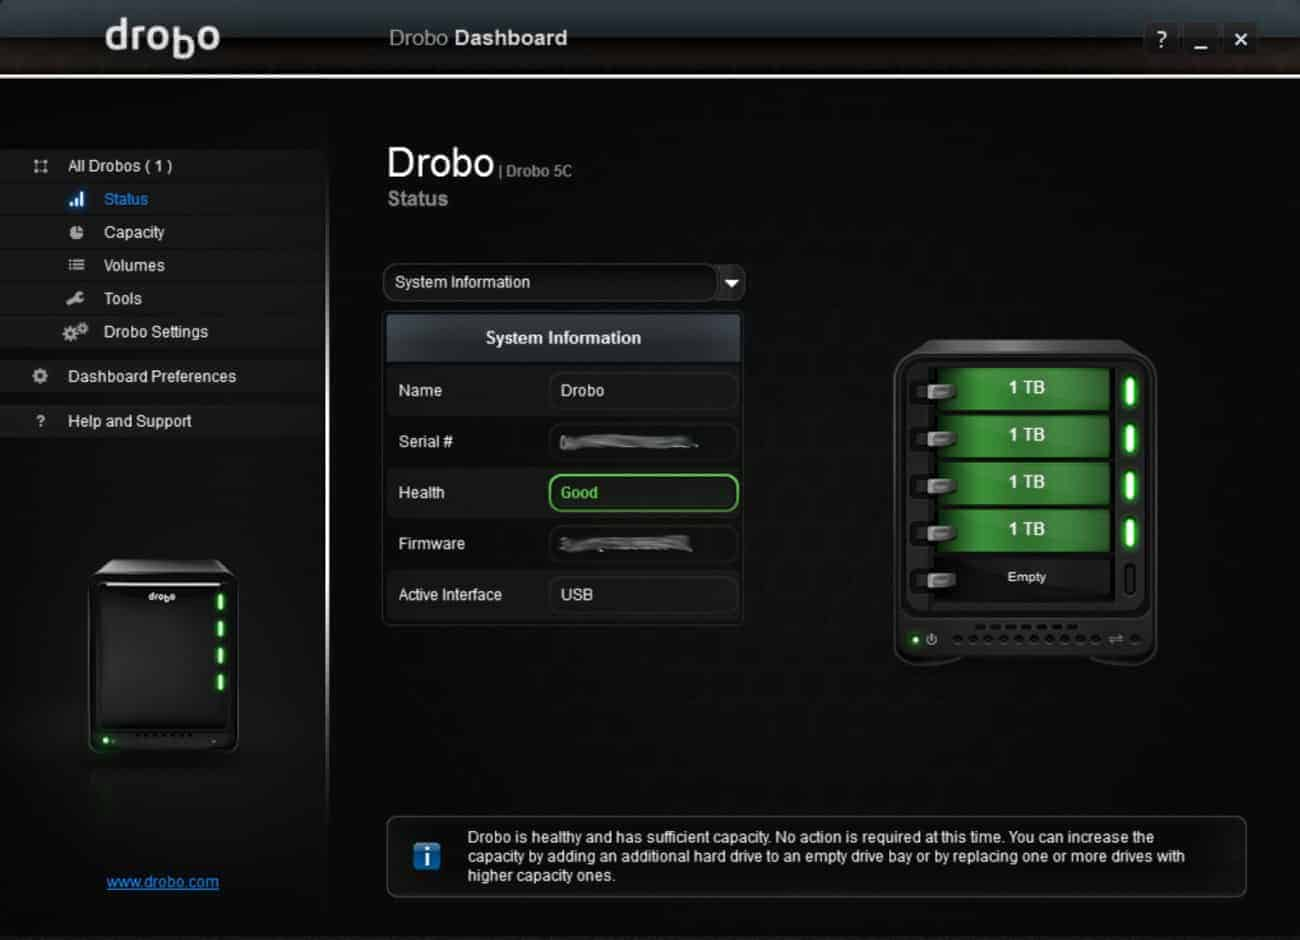 Drobo-5C-Photos-01a Drobo 5C DAS Review